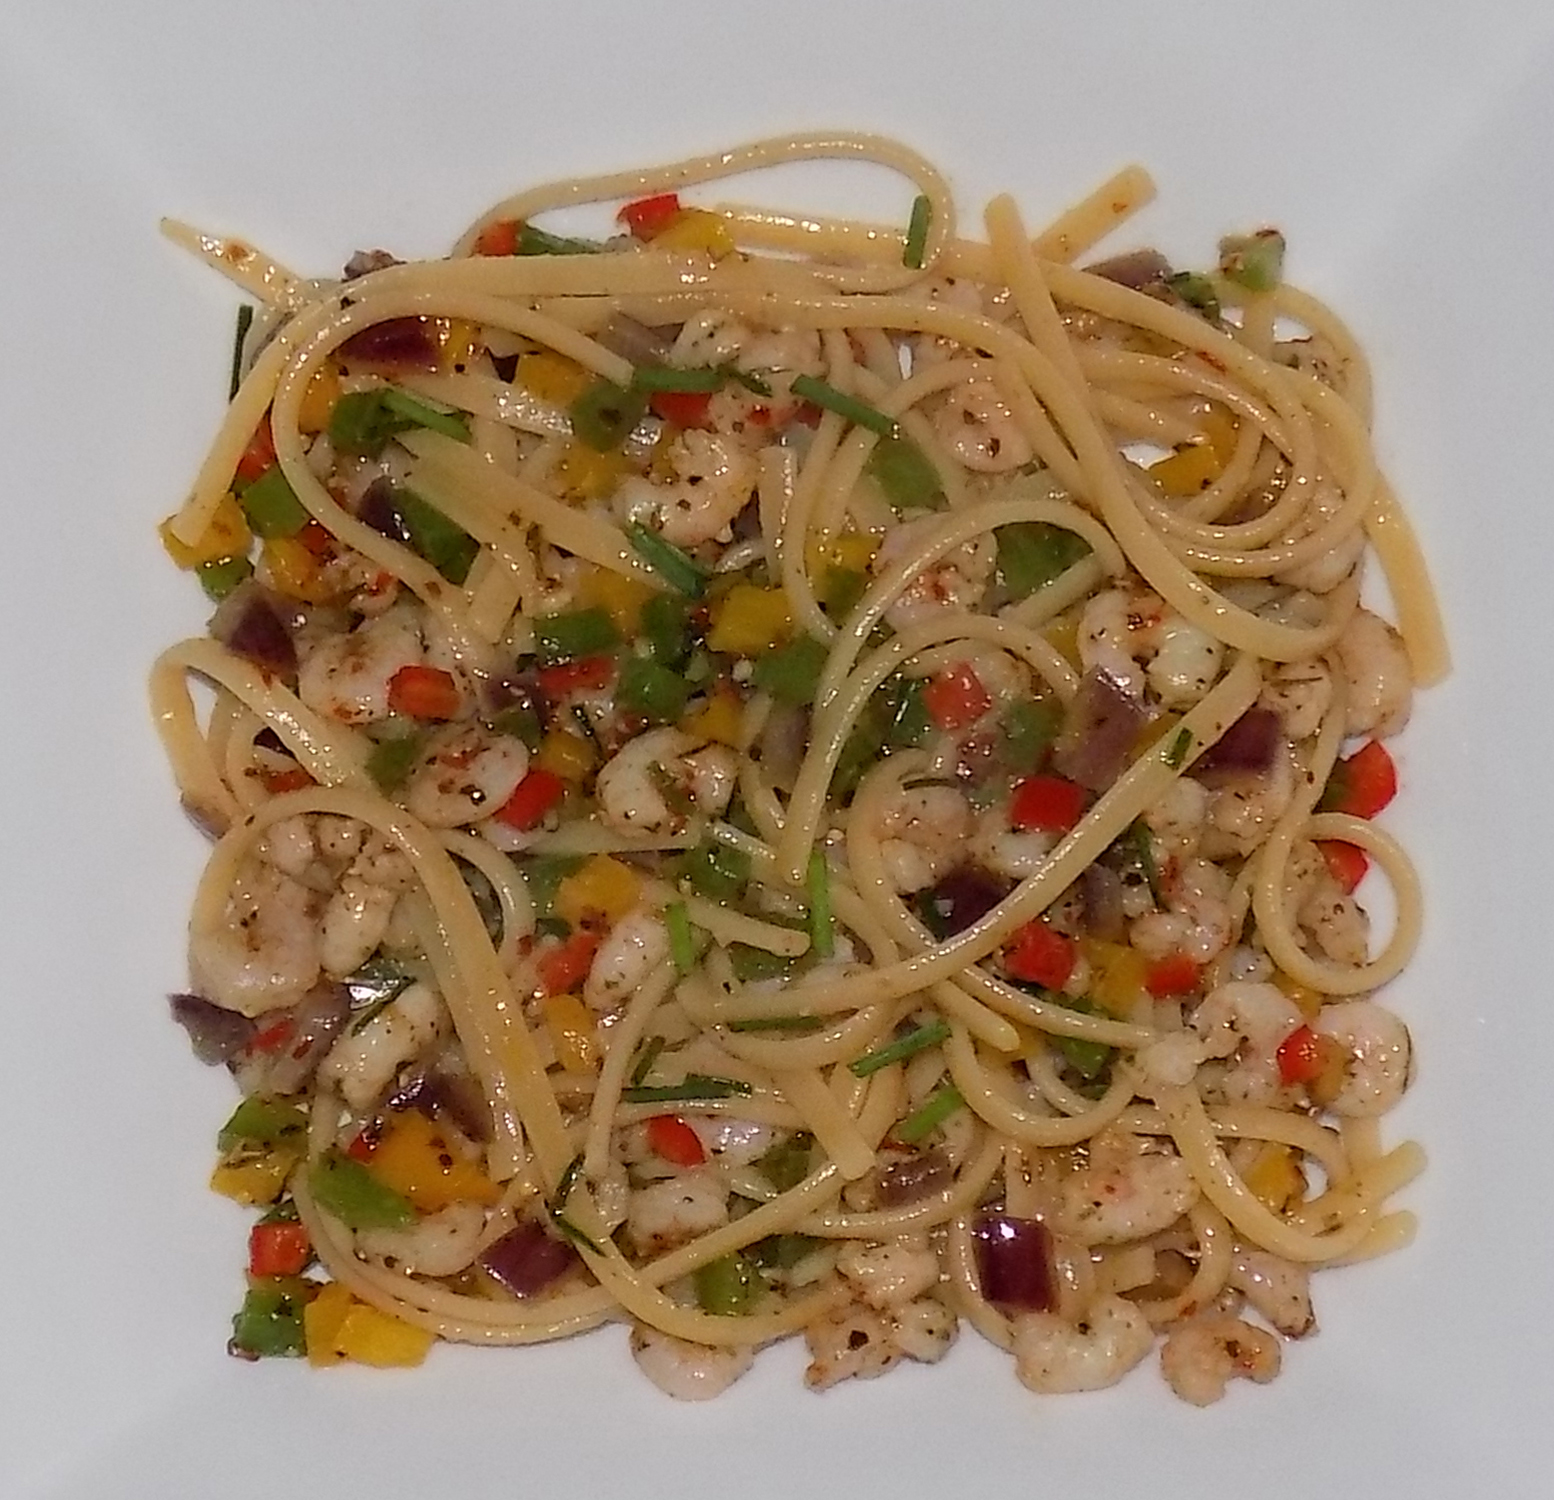 Prawn & Chili Linguine